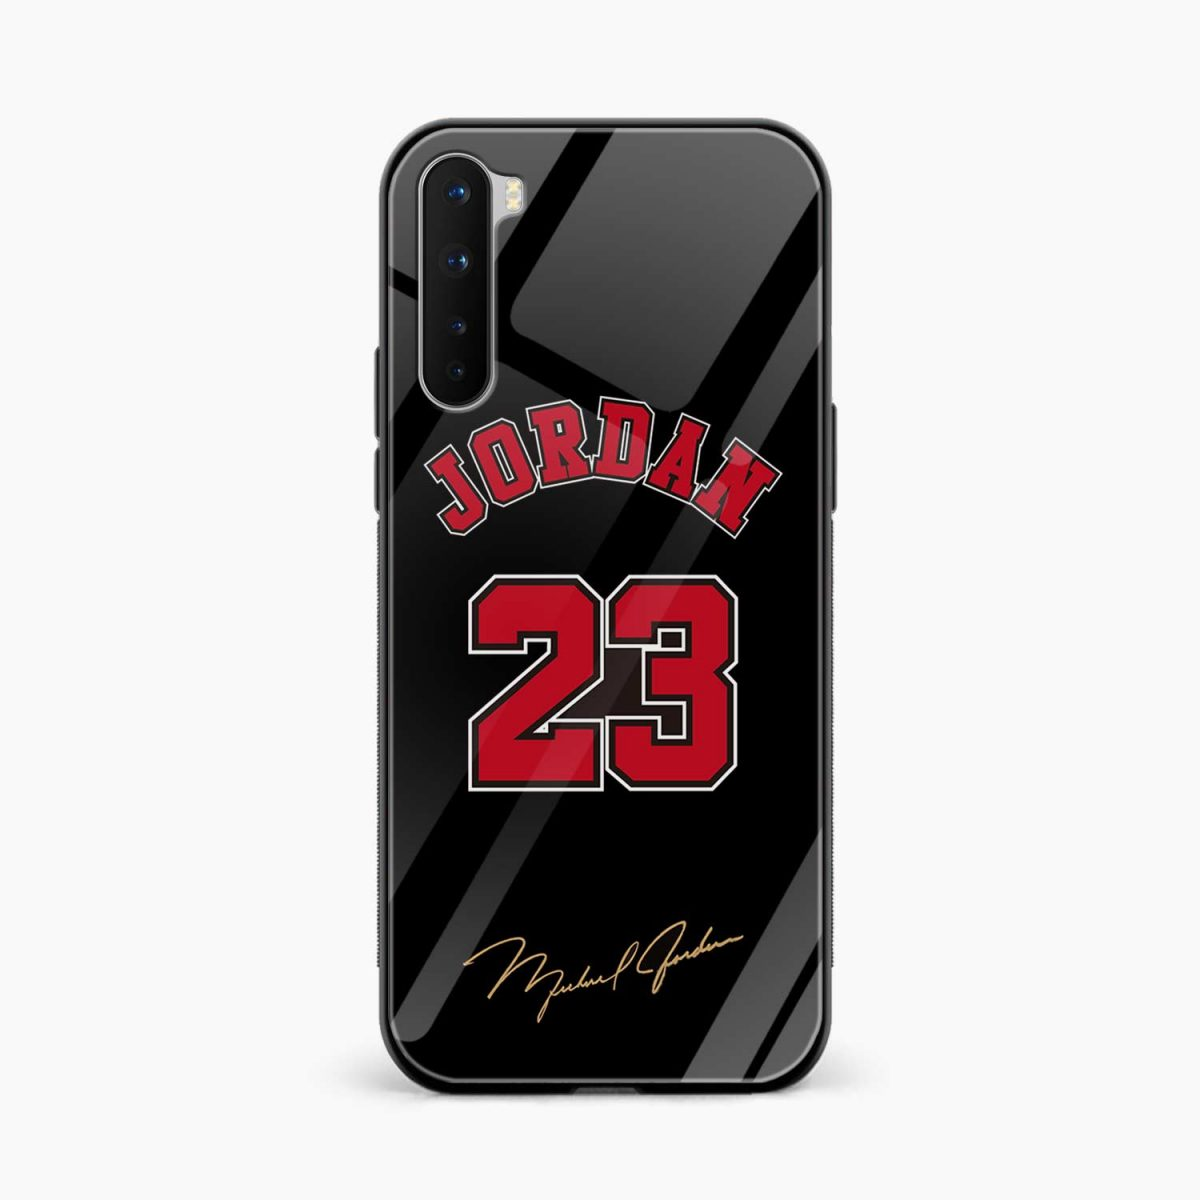 jordan 23 front view oneplus nord back cover